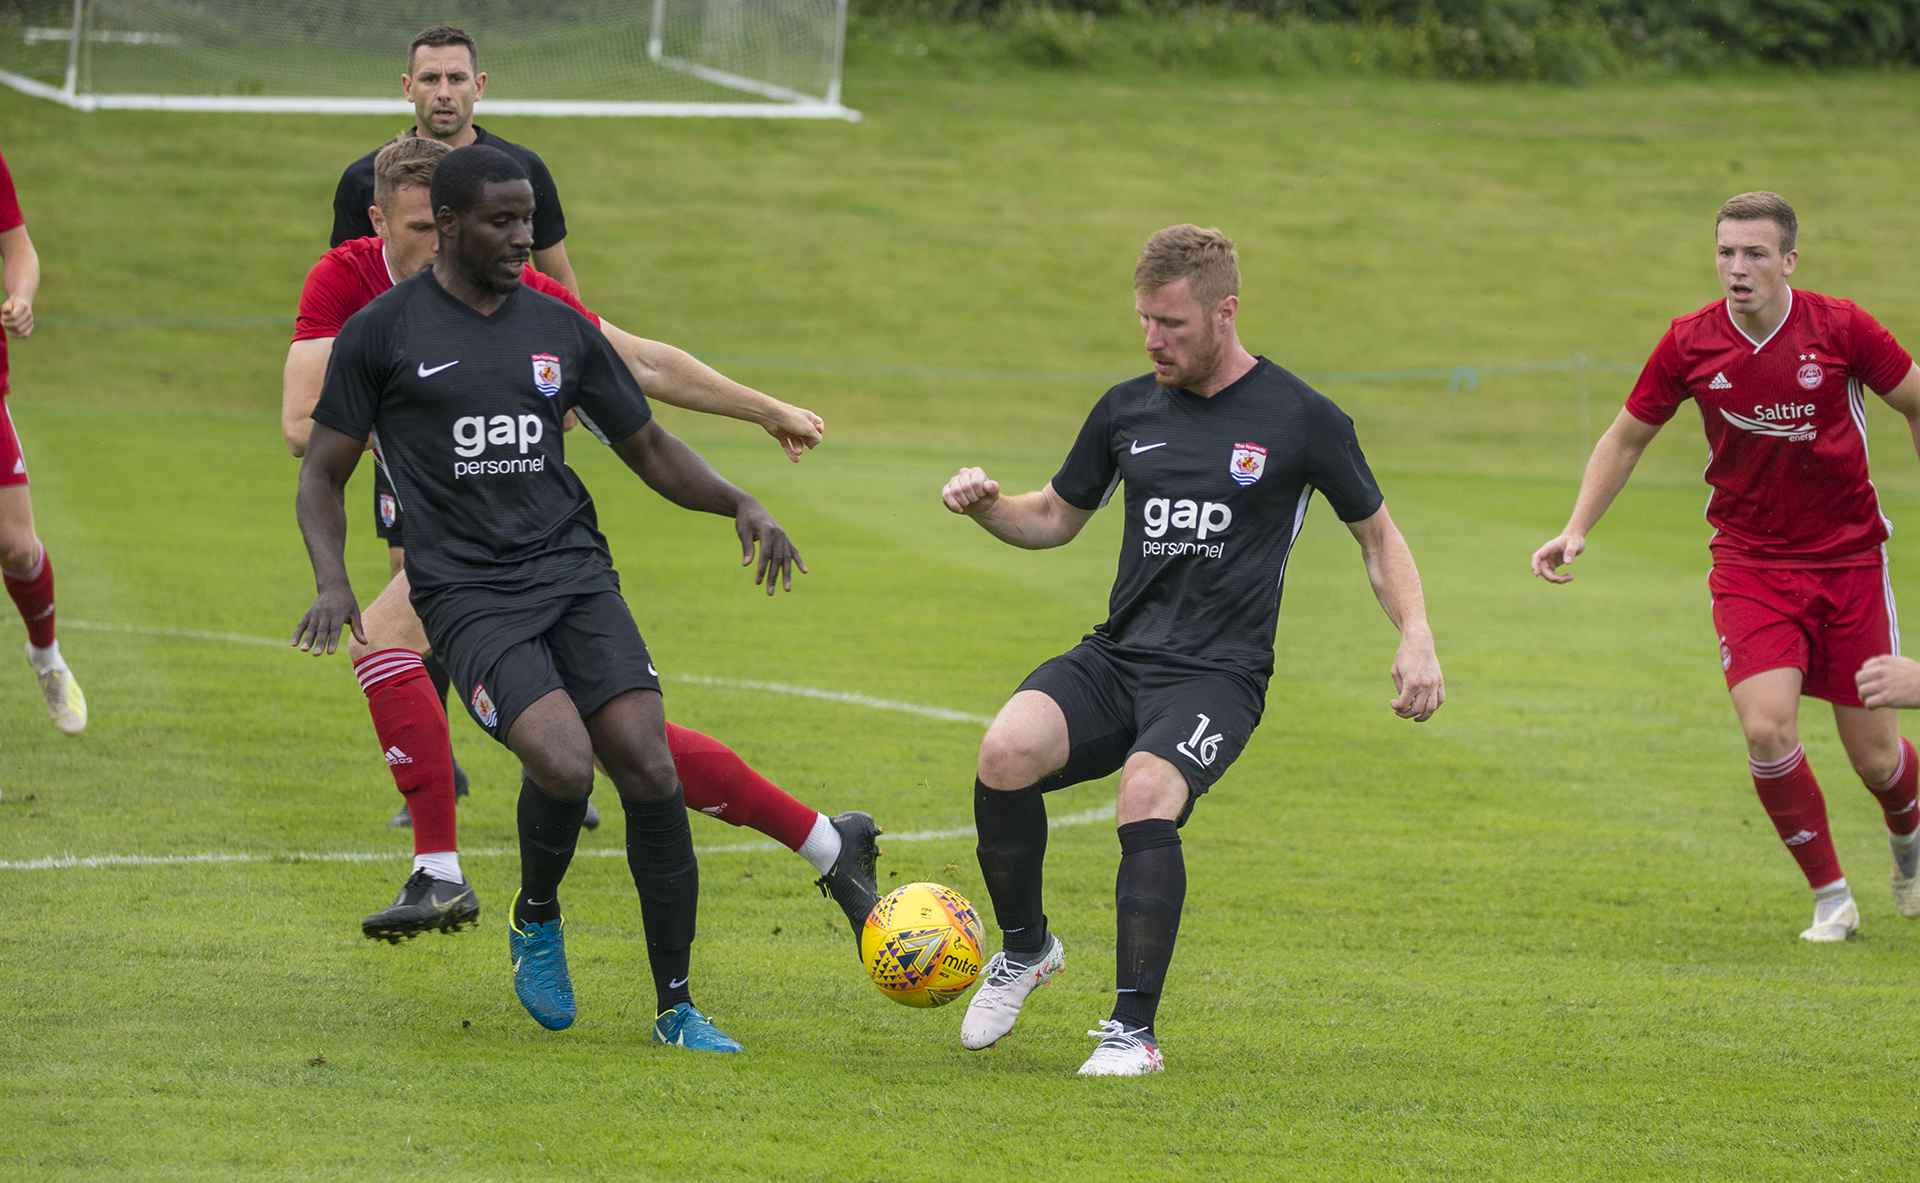 Michael Bakare (left) and Jay Owen (right) look to keep possession during a first half attack | © NCM Media